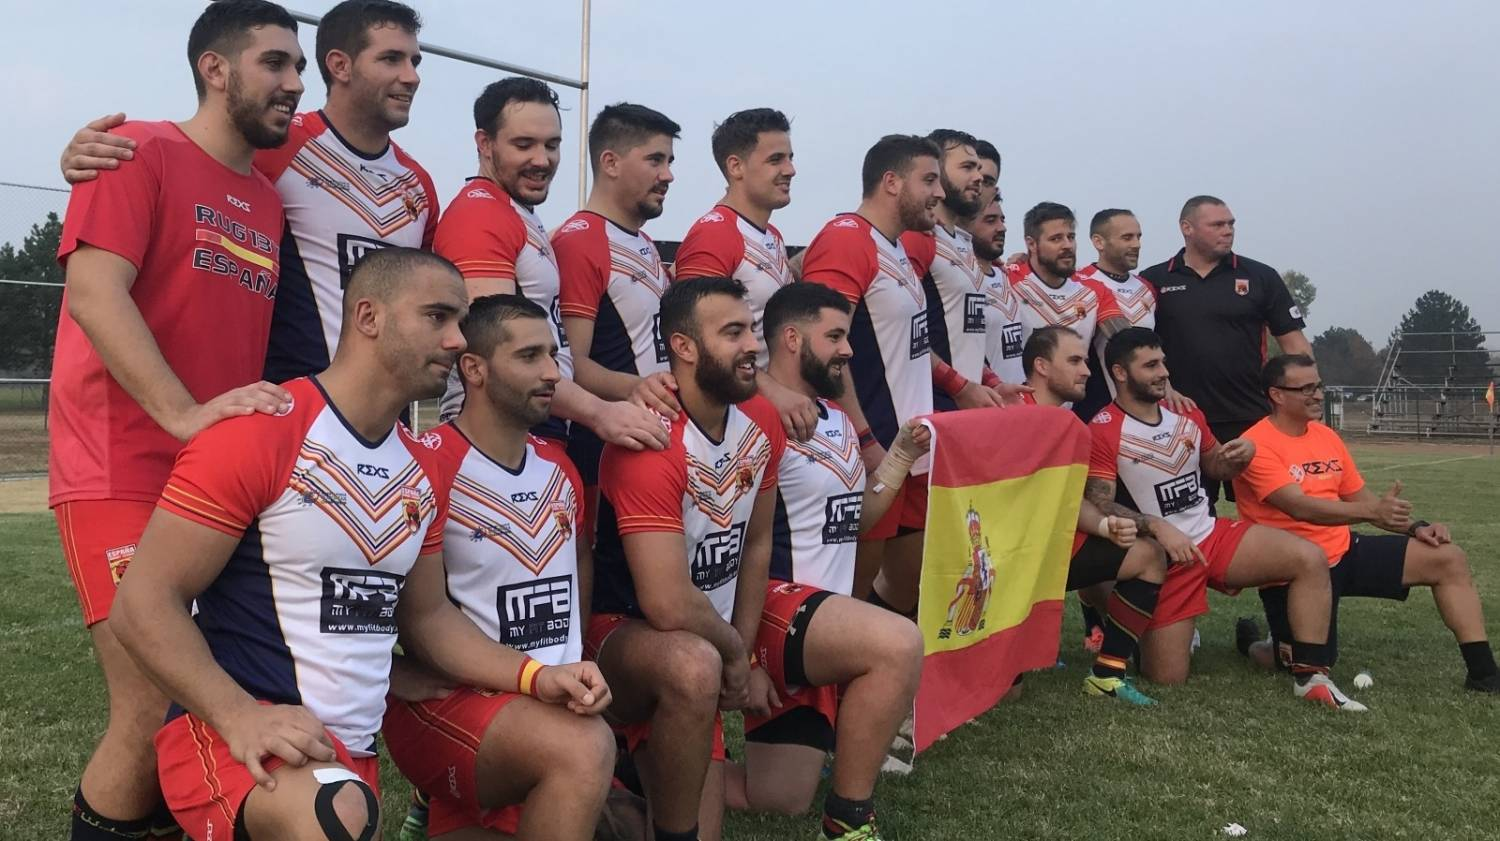 ba7894cd295 Rugby League World Cup qualifier; Serbia 24 Spain 20 - Report